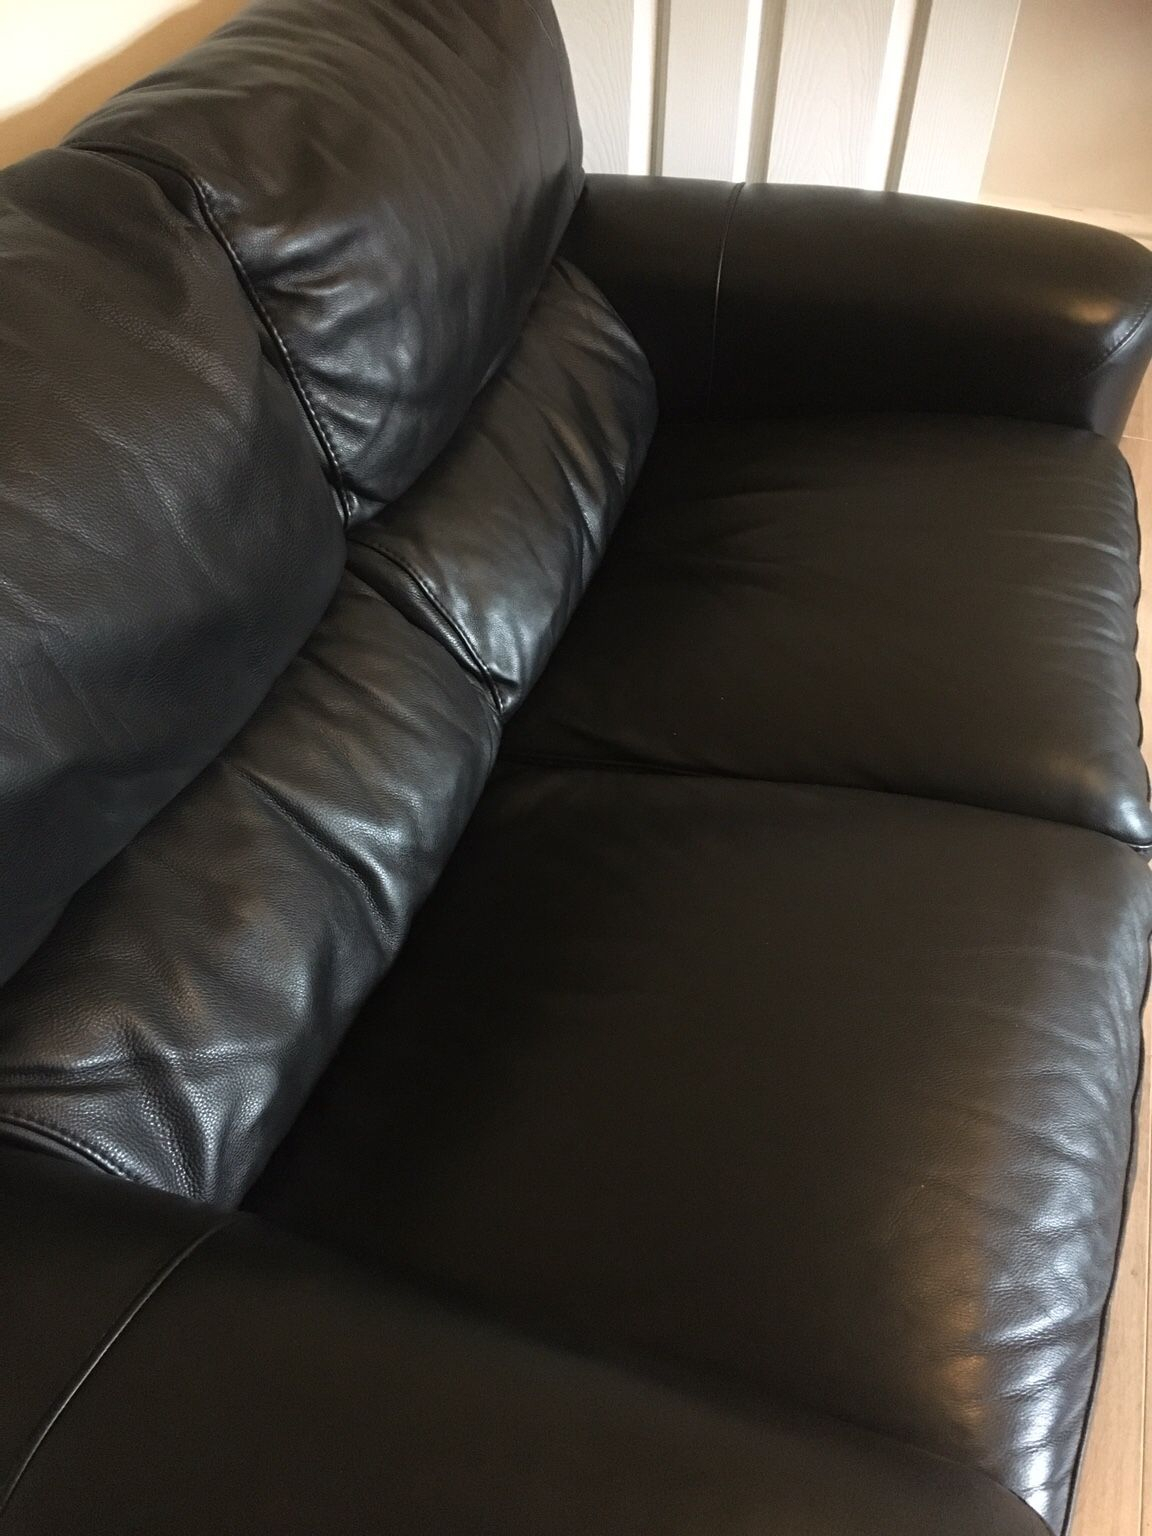 Https://en.shpock/i/w8Uitd3Ptwsme 6B/ 2018 12 17T20:34:49+ With Moana Blue Leather Power Reclining Sofa Chairs With Usb (Photo 15 of 20)